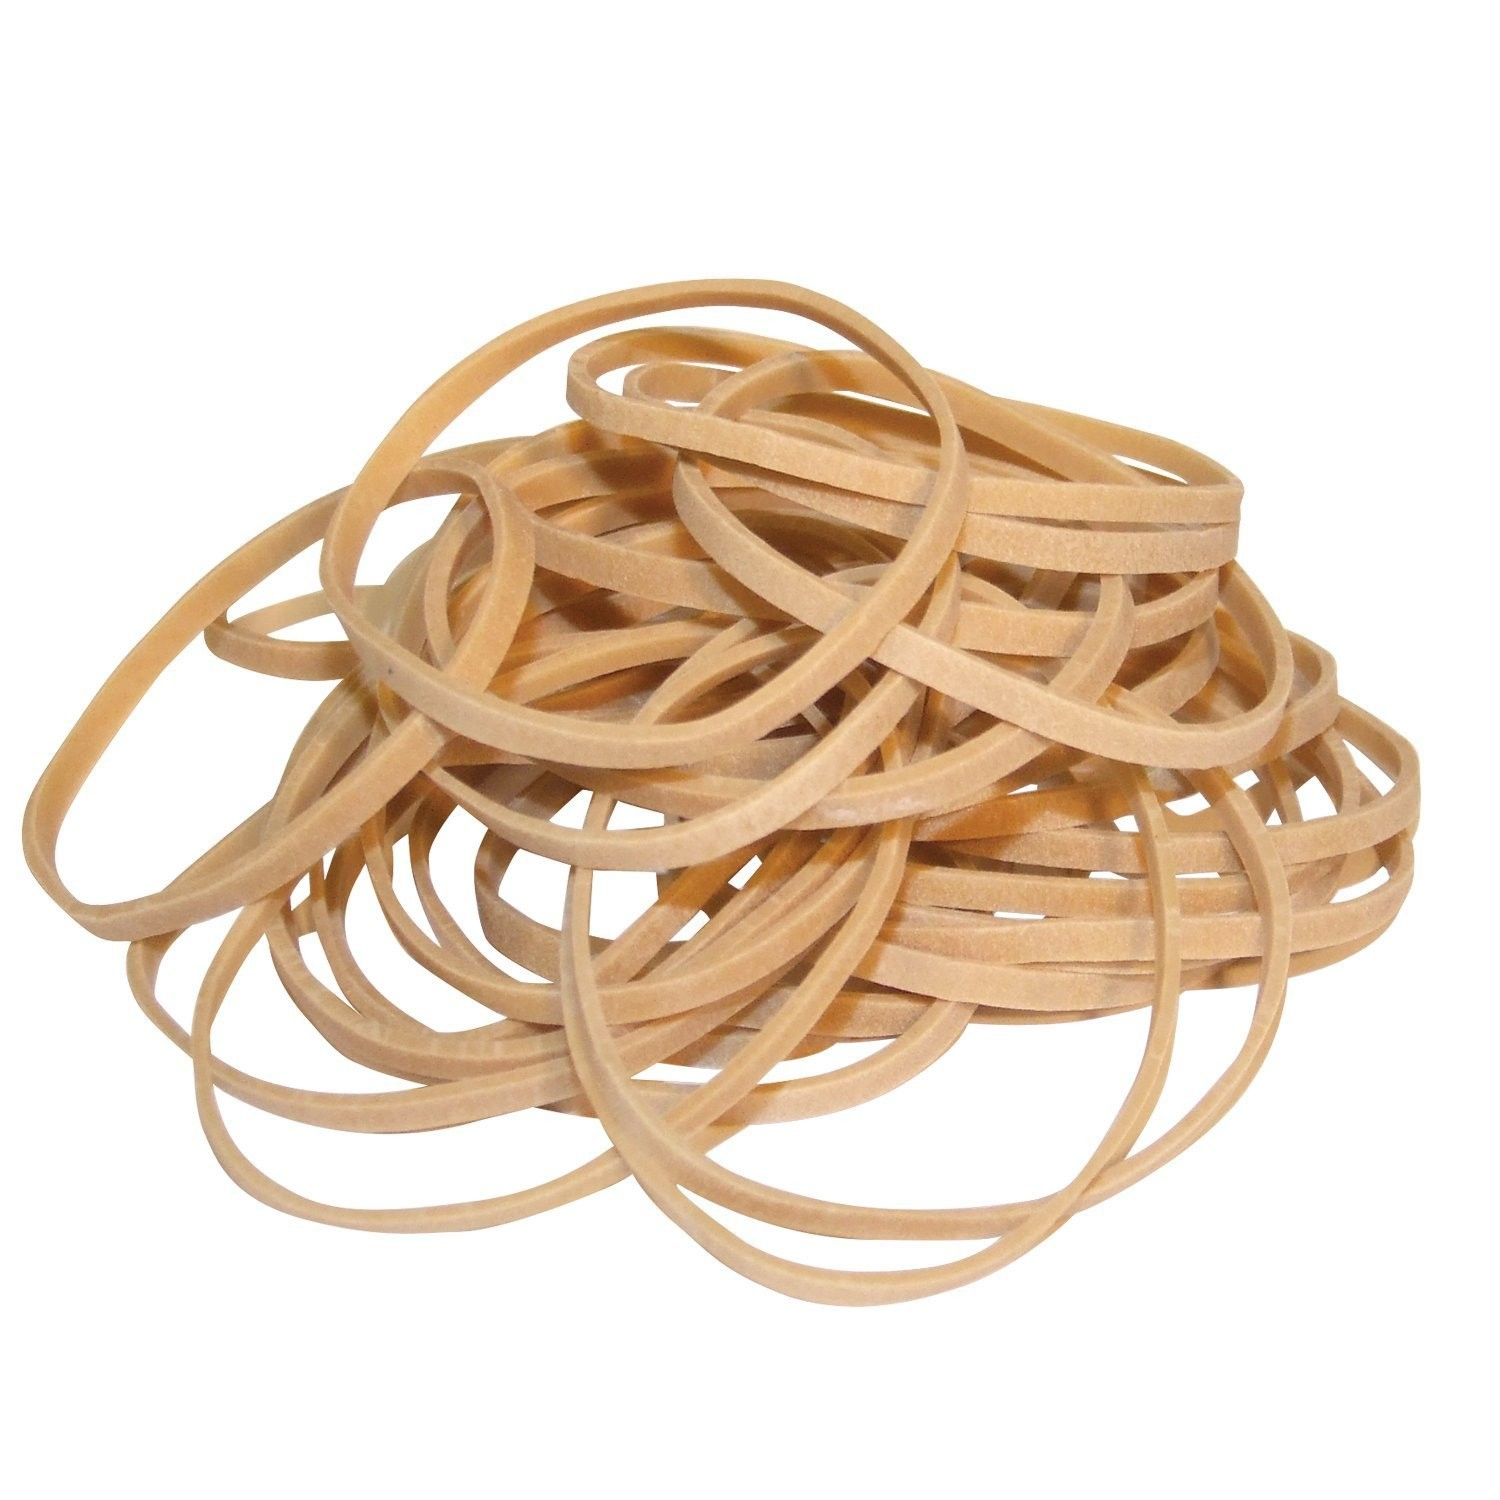 RUBBER BANDS 160MMX3.0MM NATURAL